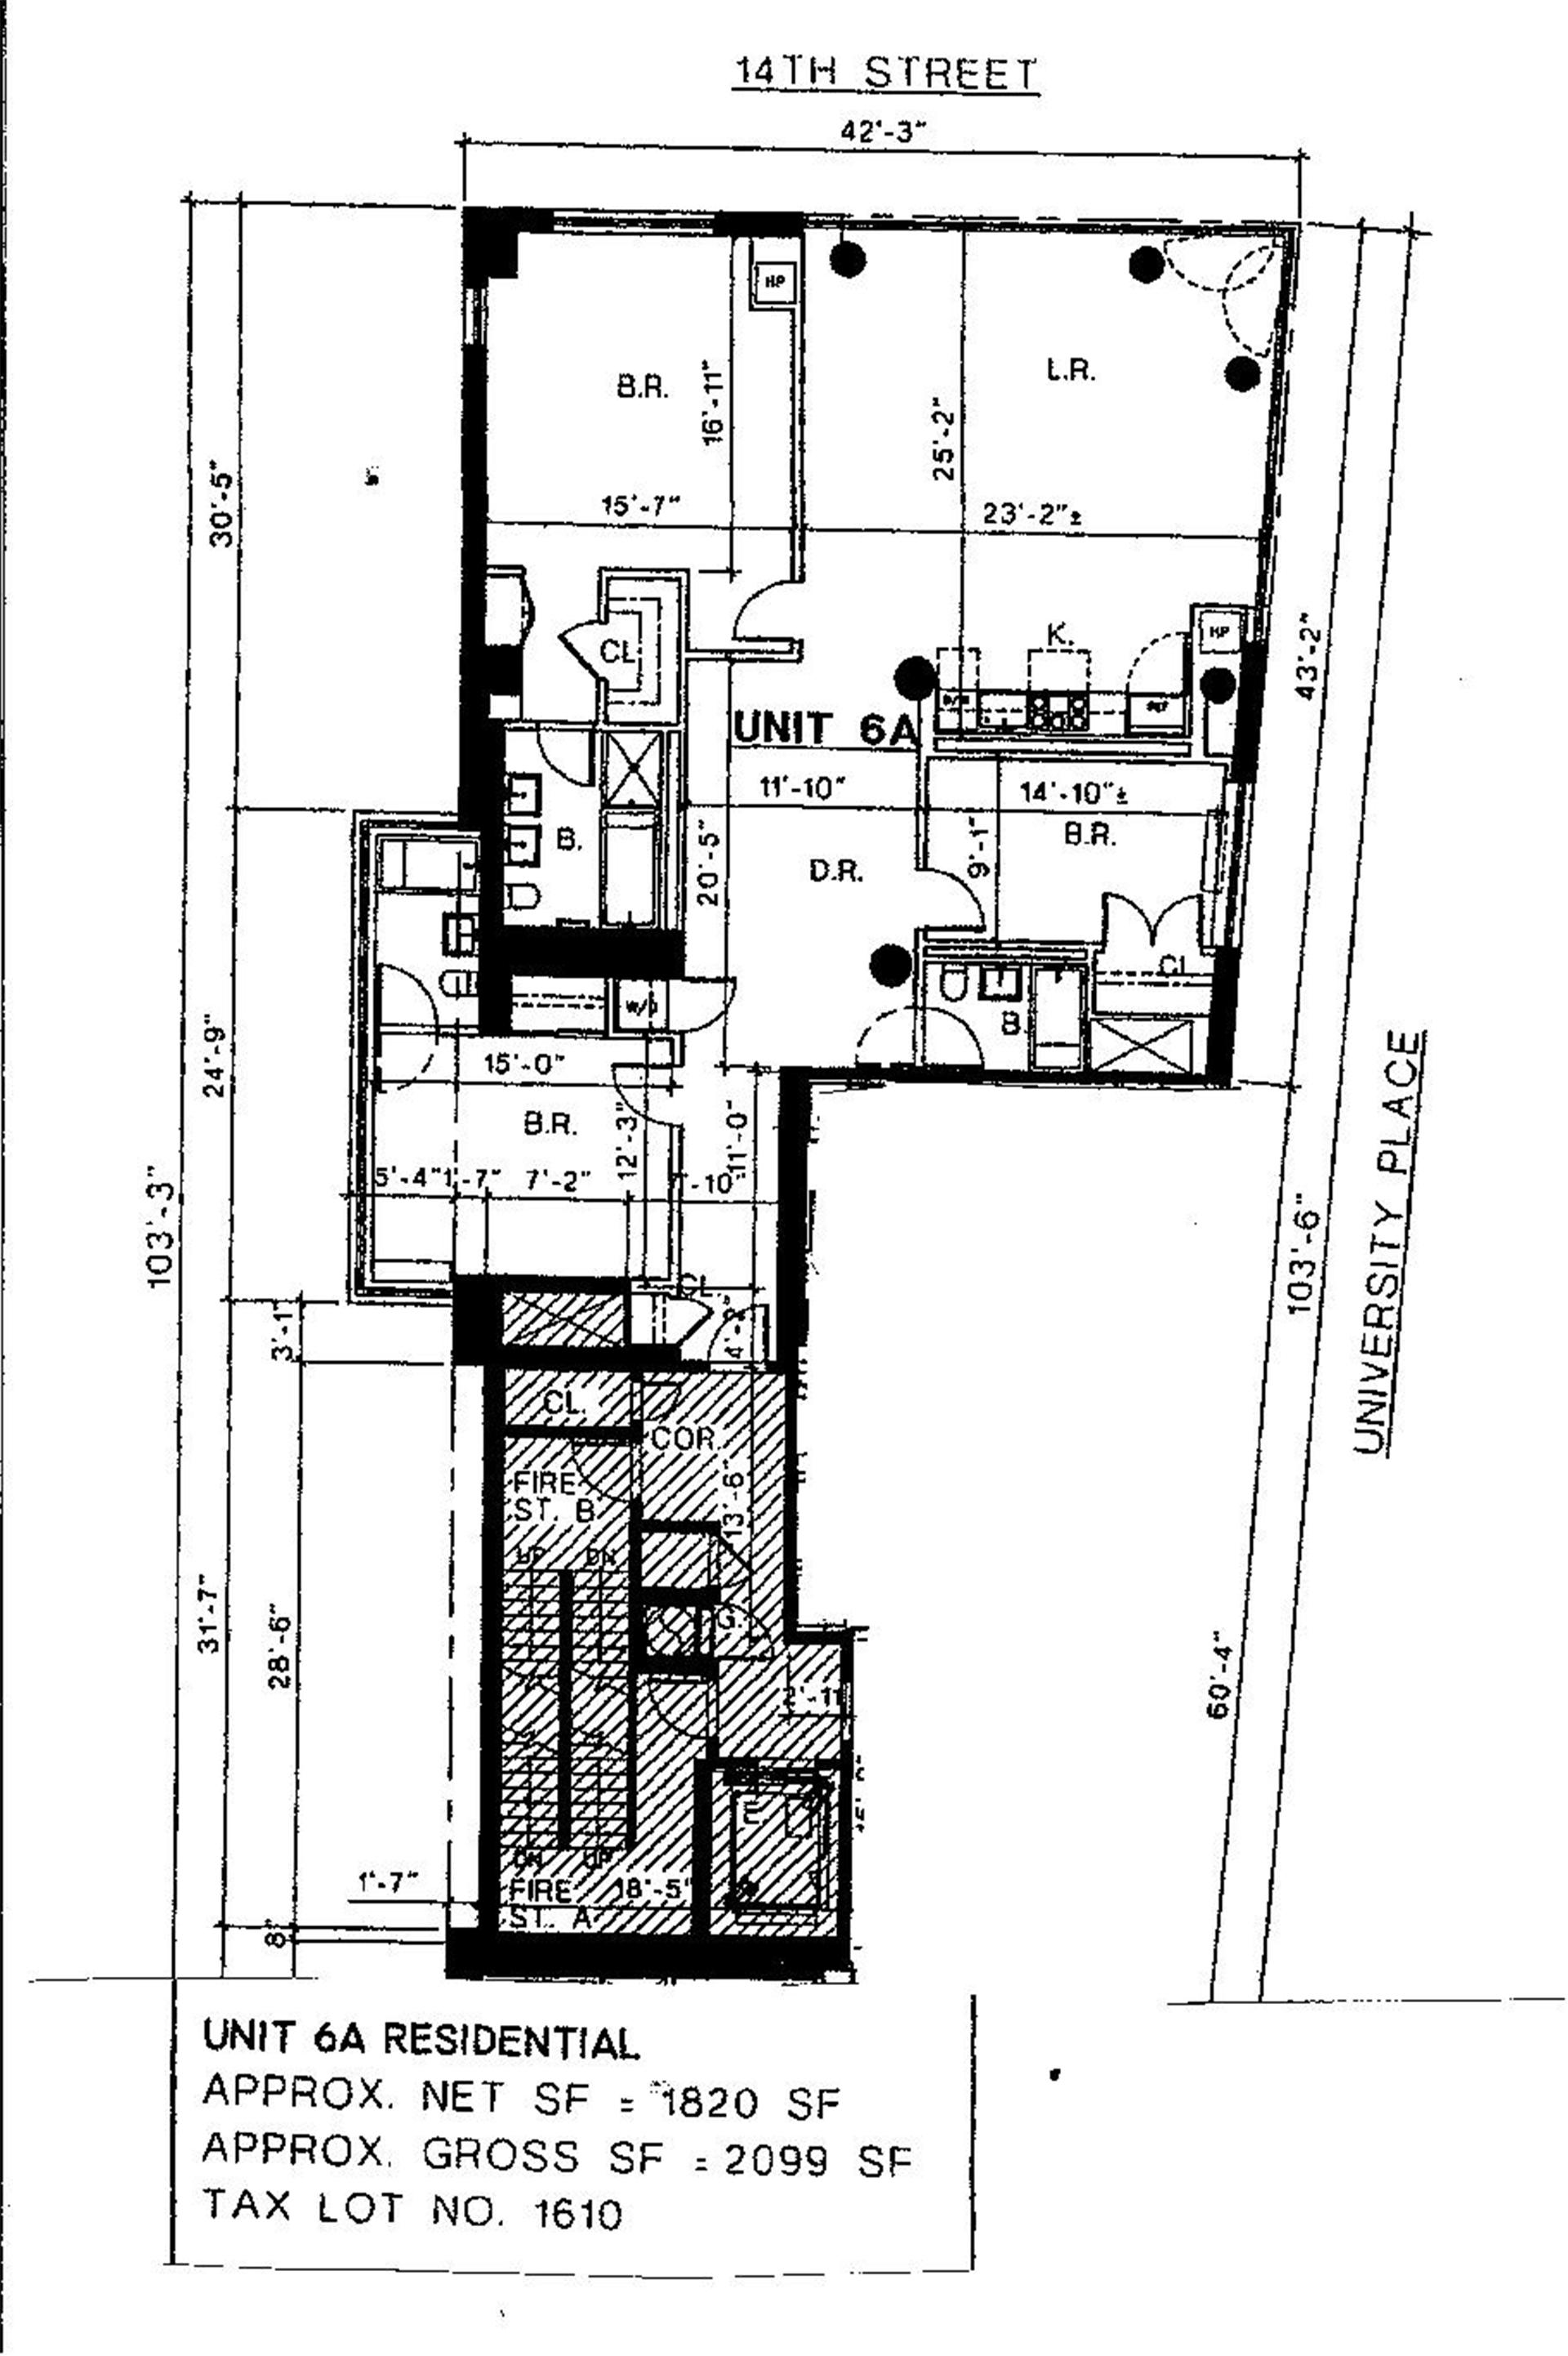 Floor plan of 8 Union Square South, 6A - Greenwich Village, New York